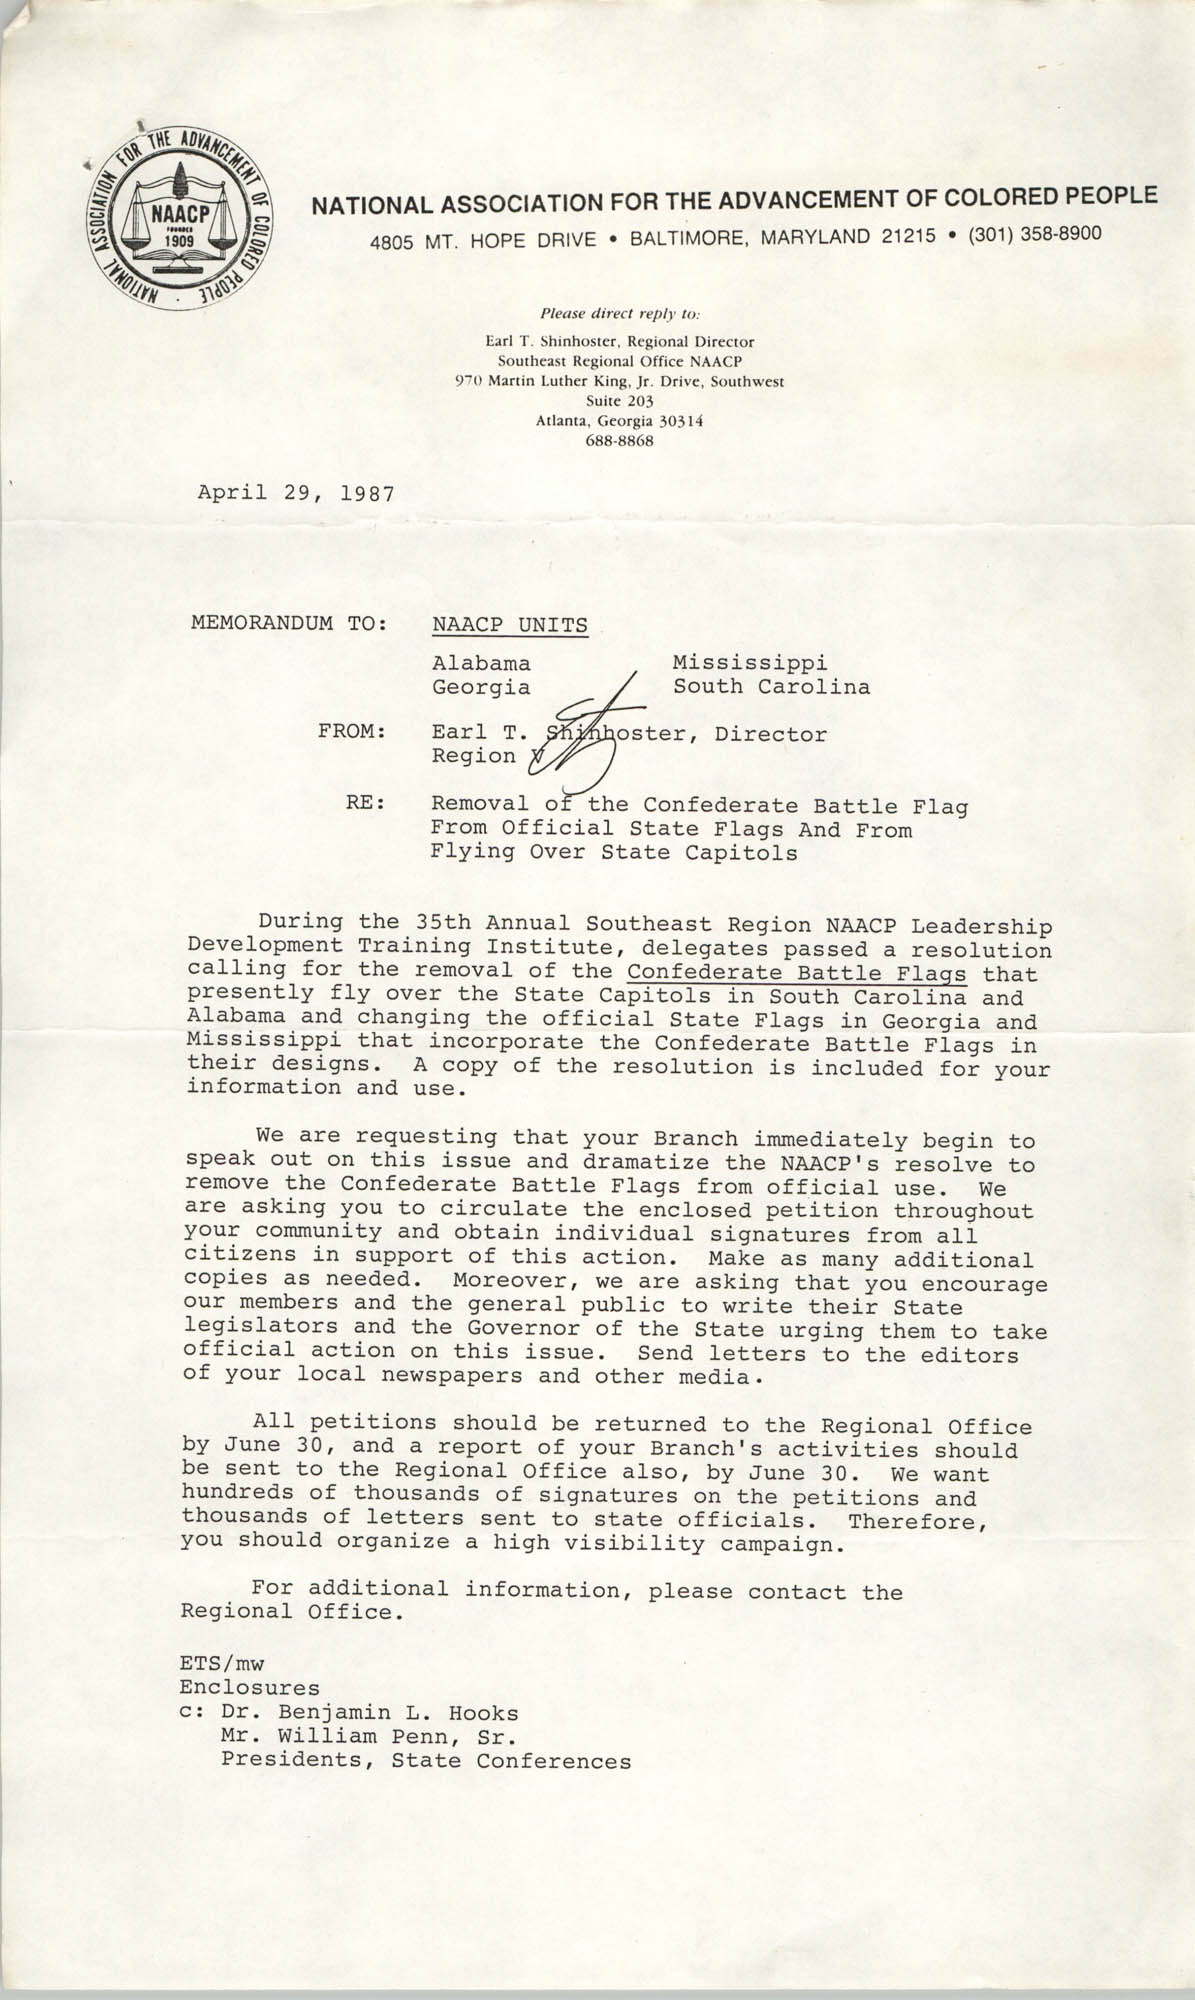 NAACP Memorandum, April 29, 1987